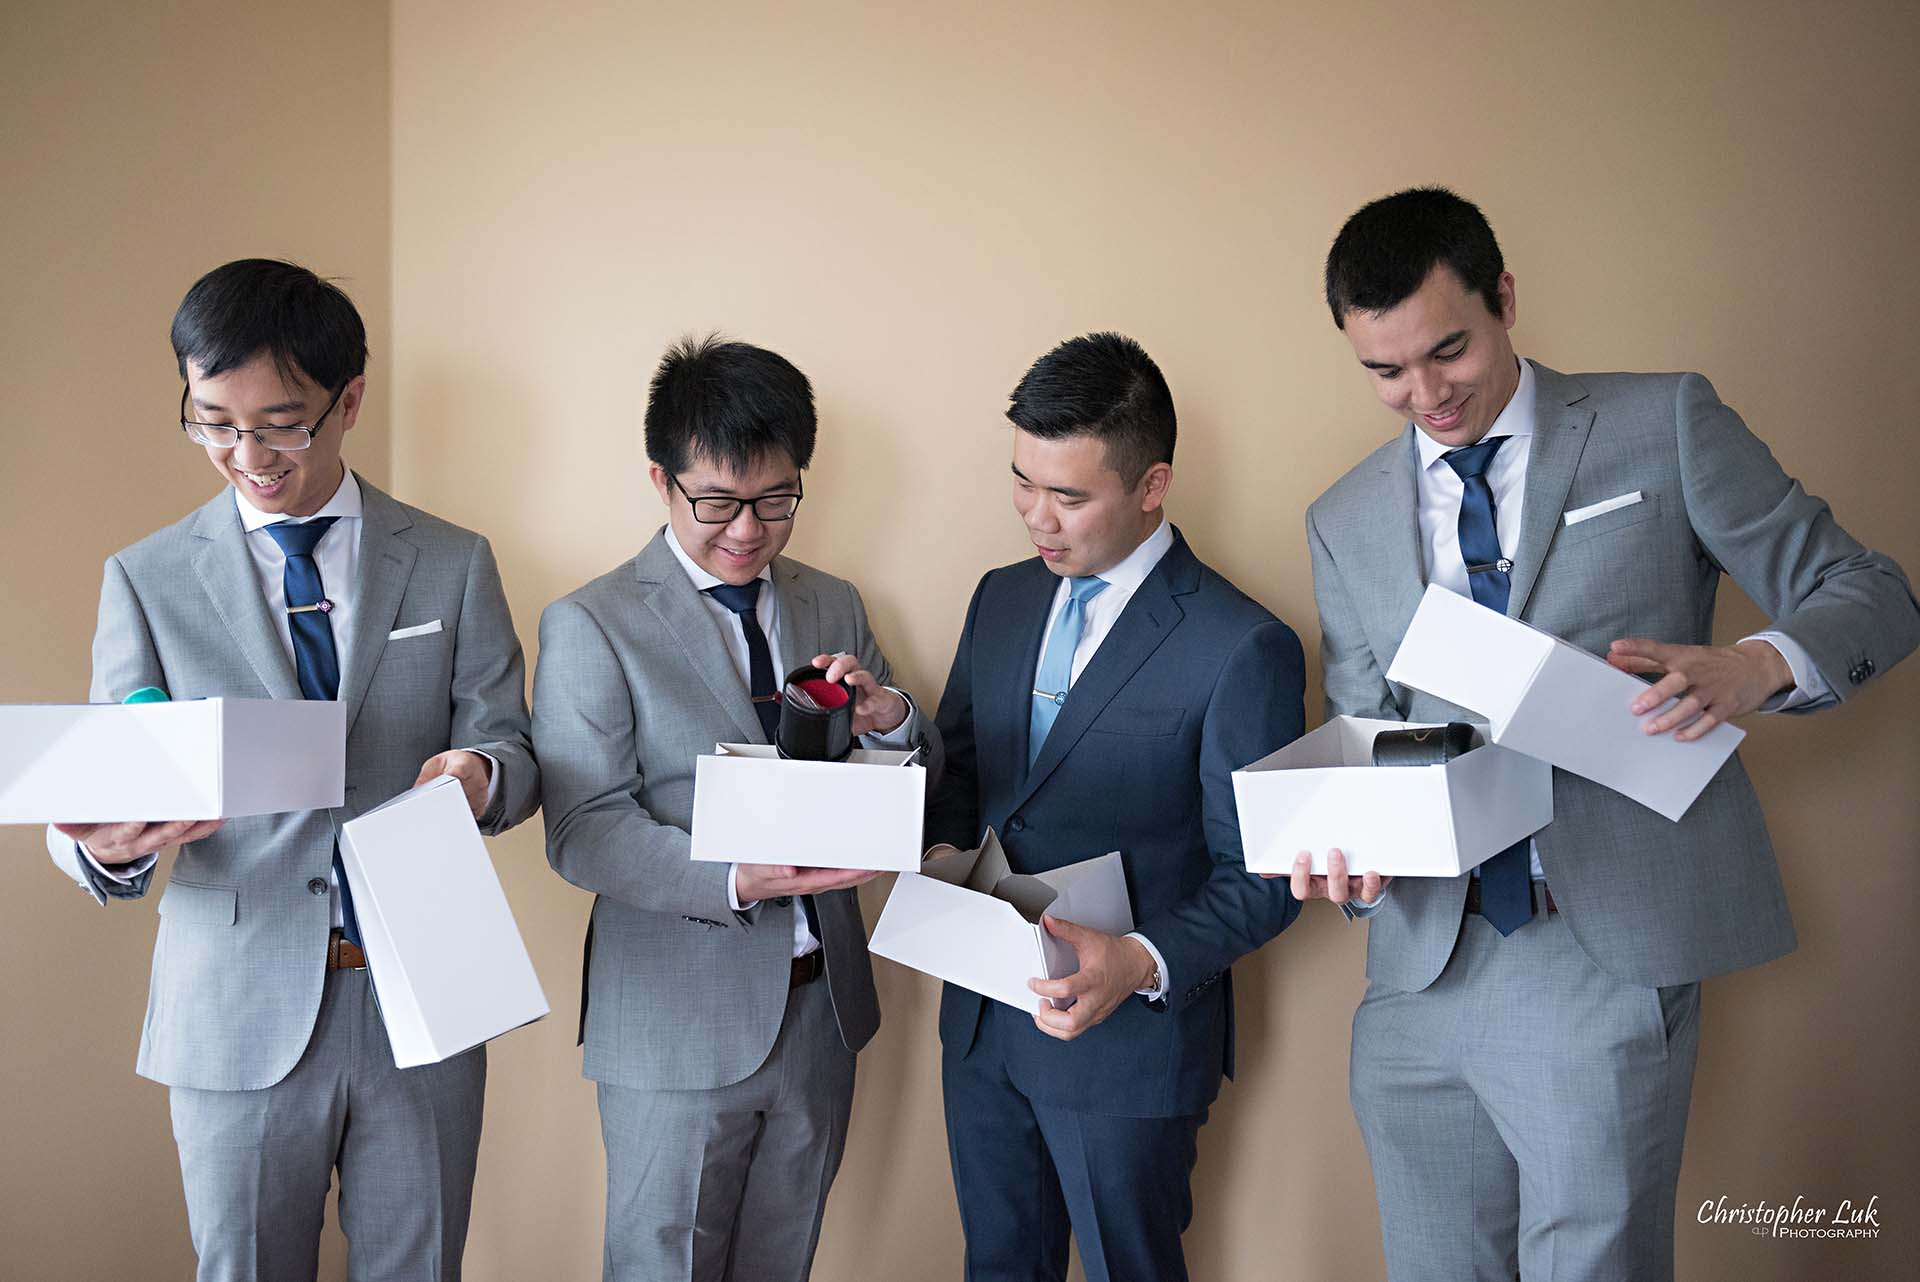 Christopher Luk Toronto Wedding Photographer Groom Getting Ready Preparations Natural Candid Photojournalistic Wingmen Suits Custom Made to Measure Navy Blue Suit Groomsmen Best Man Opening Gifts Presents